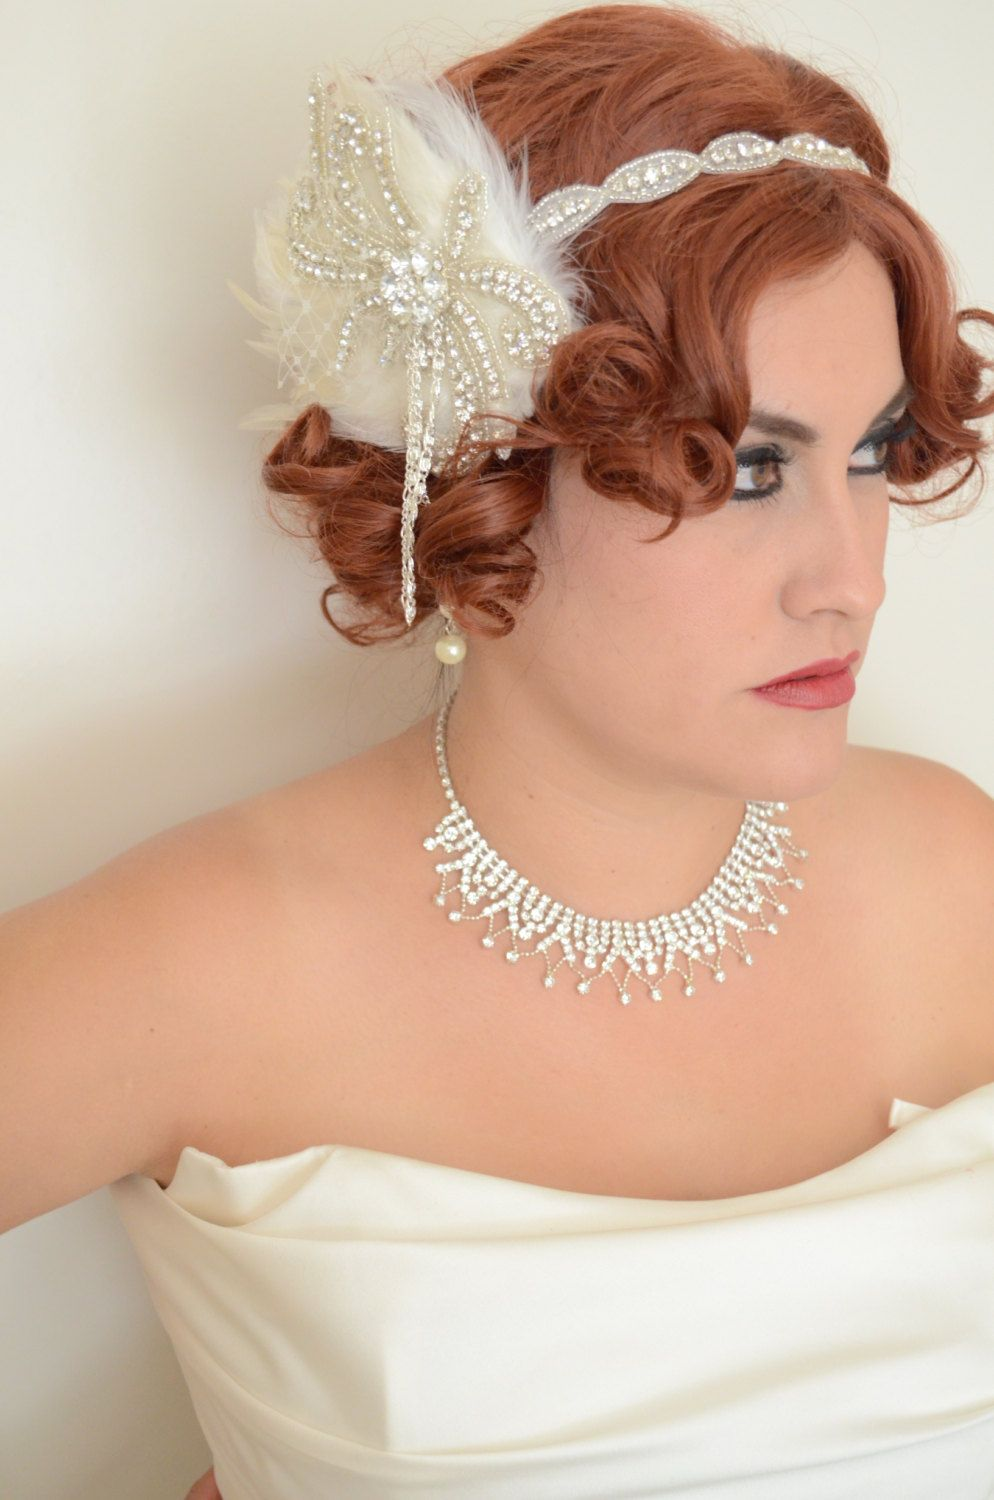 CLEARANCEOne+of+a+KINDArt+deco1920's+headbandLight+by+yanethandco,+$75.00